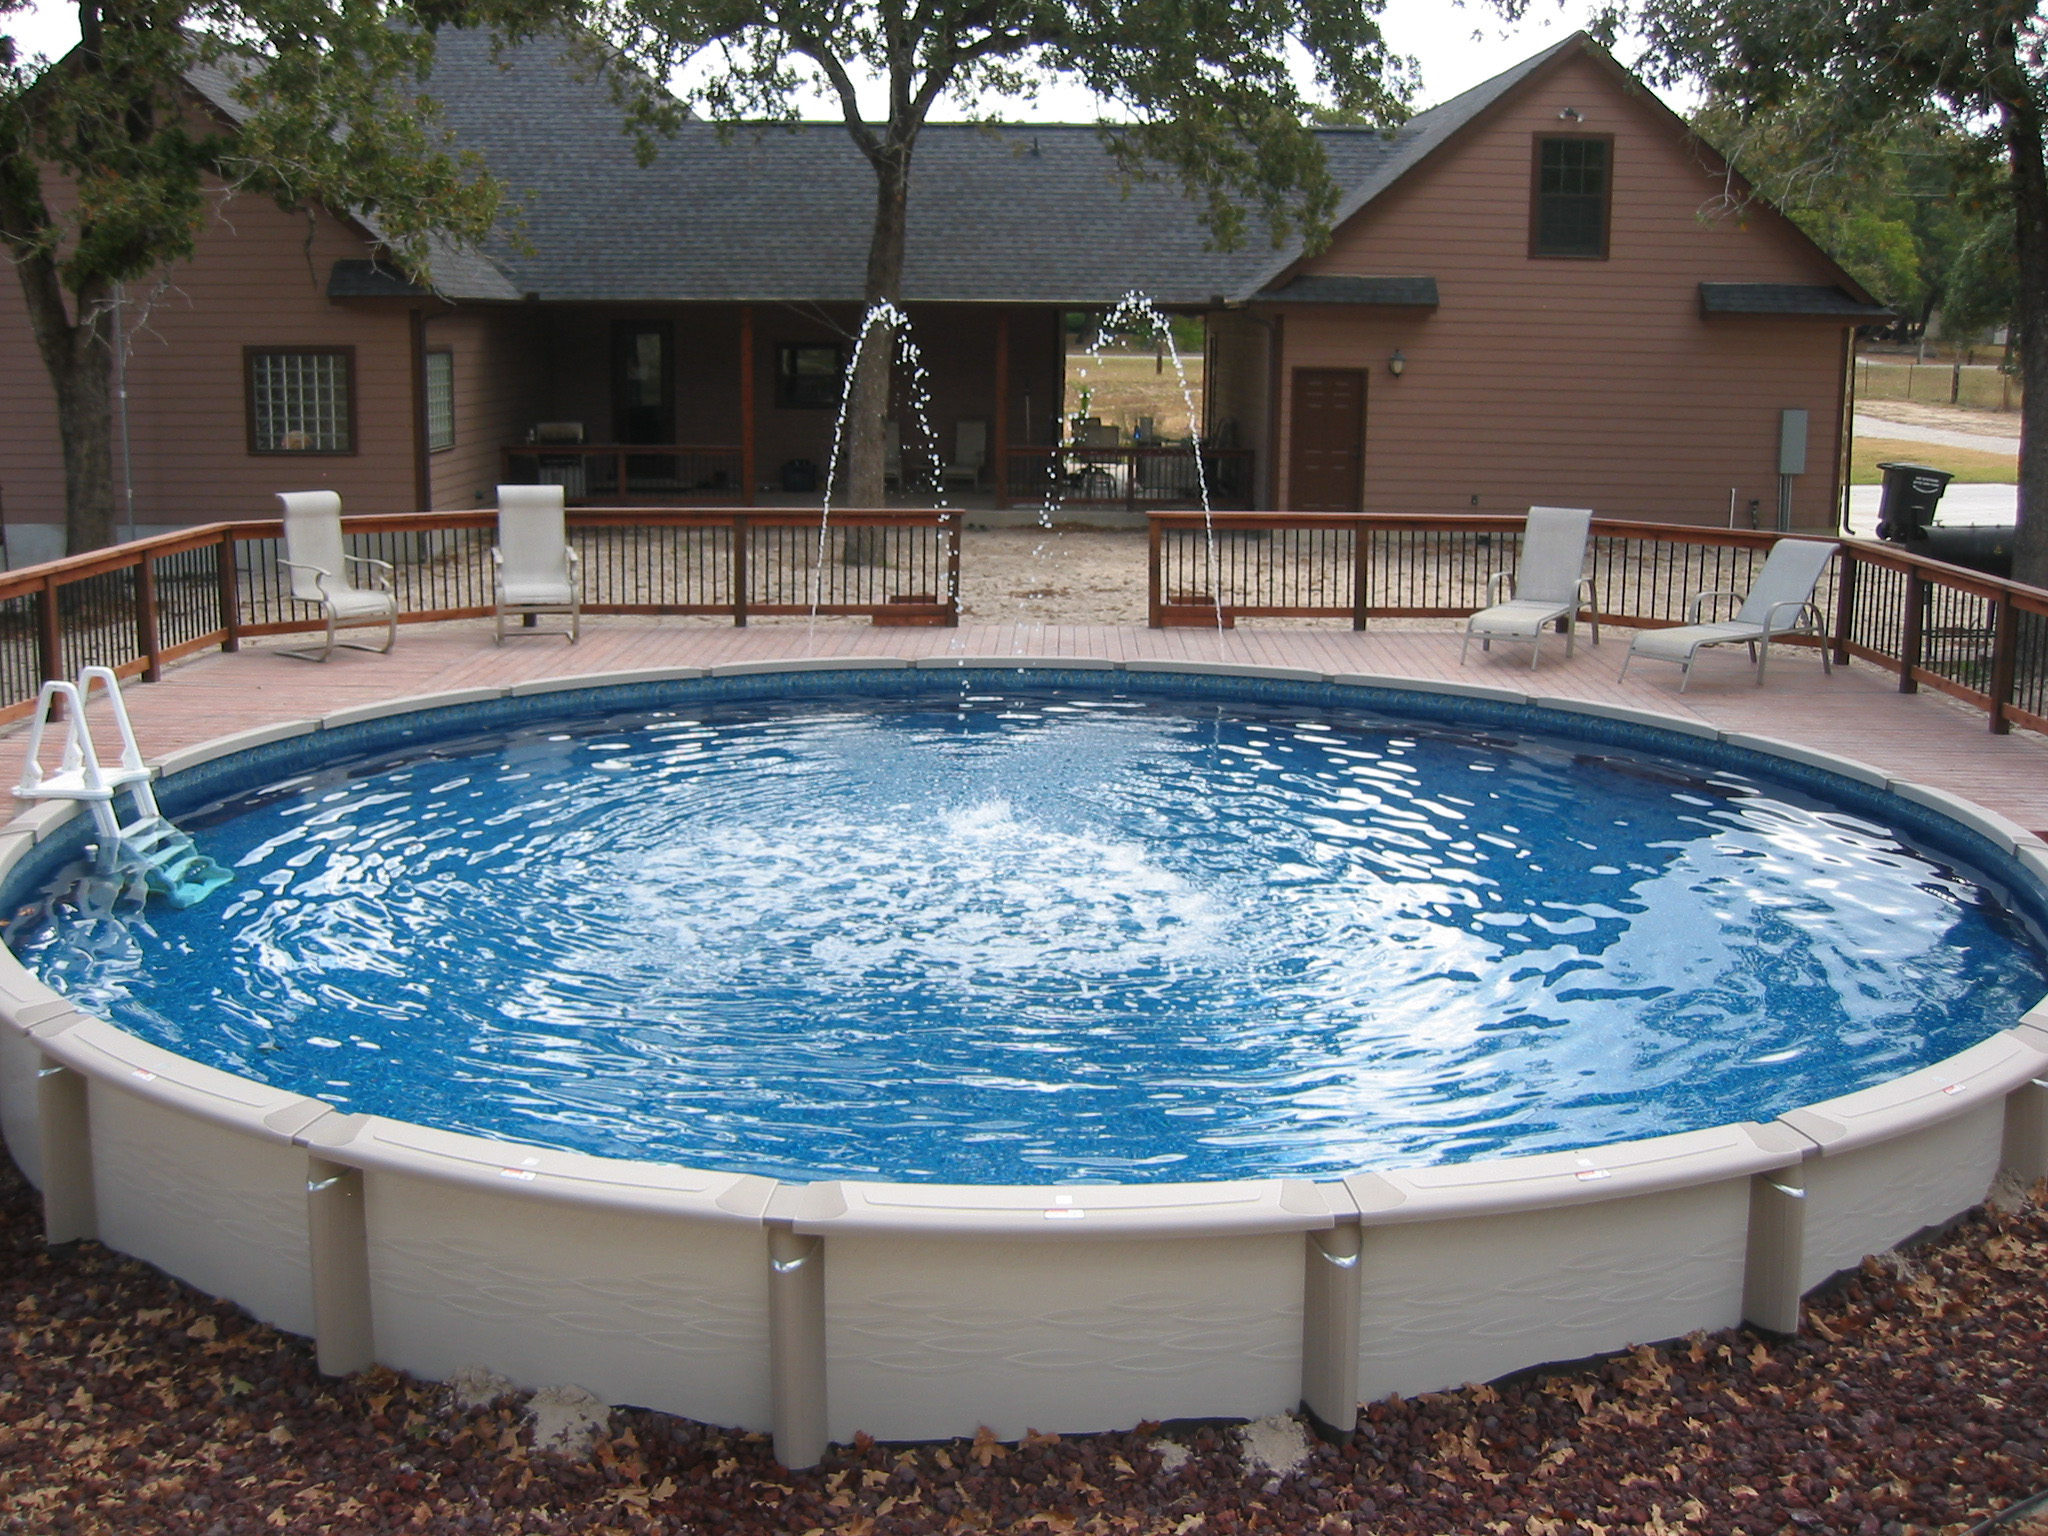 Best above ground swimming pools design on vine for On ground pool designs